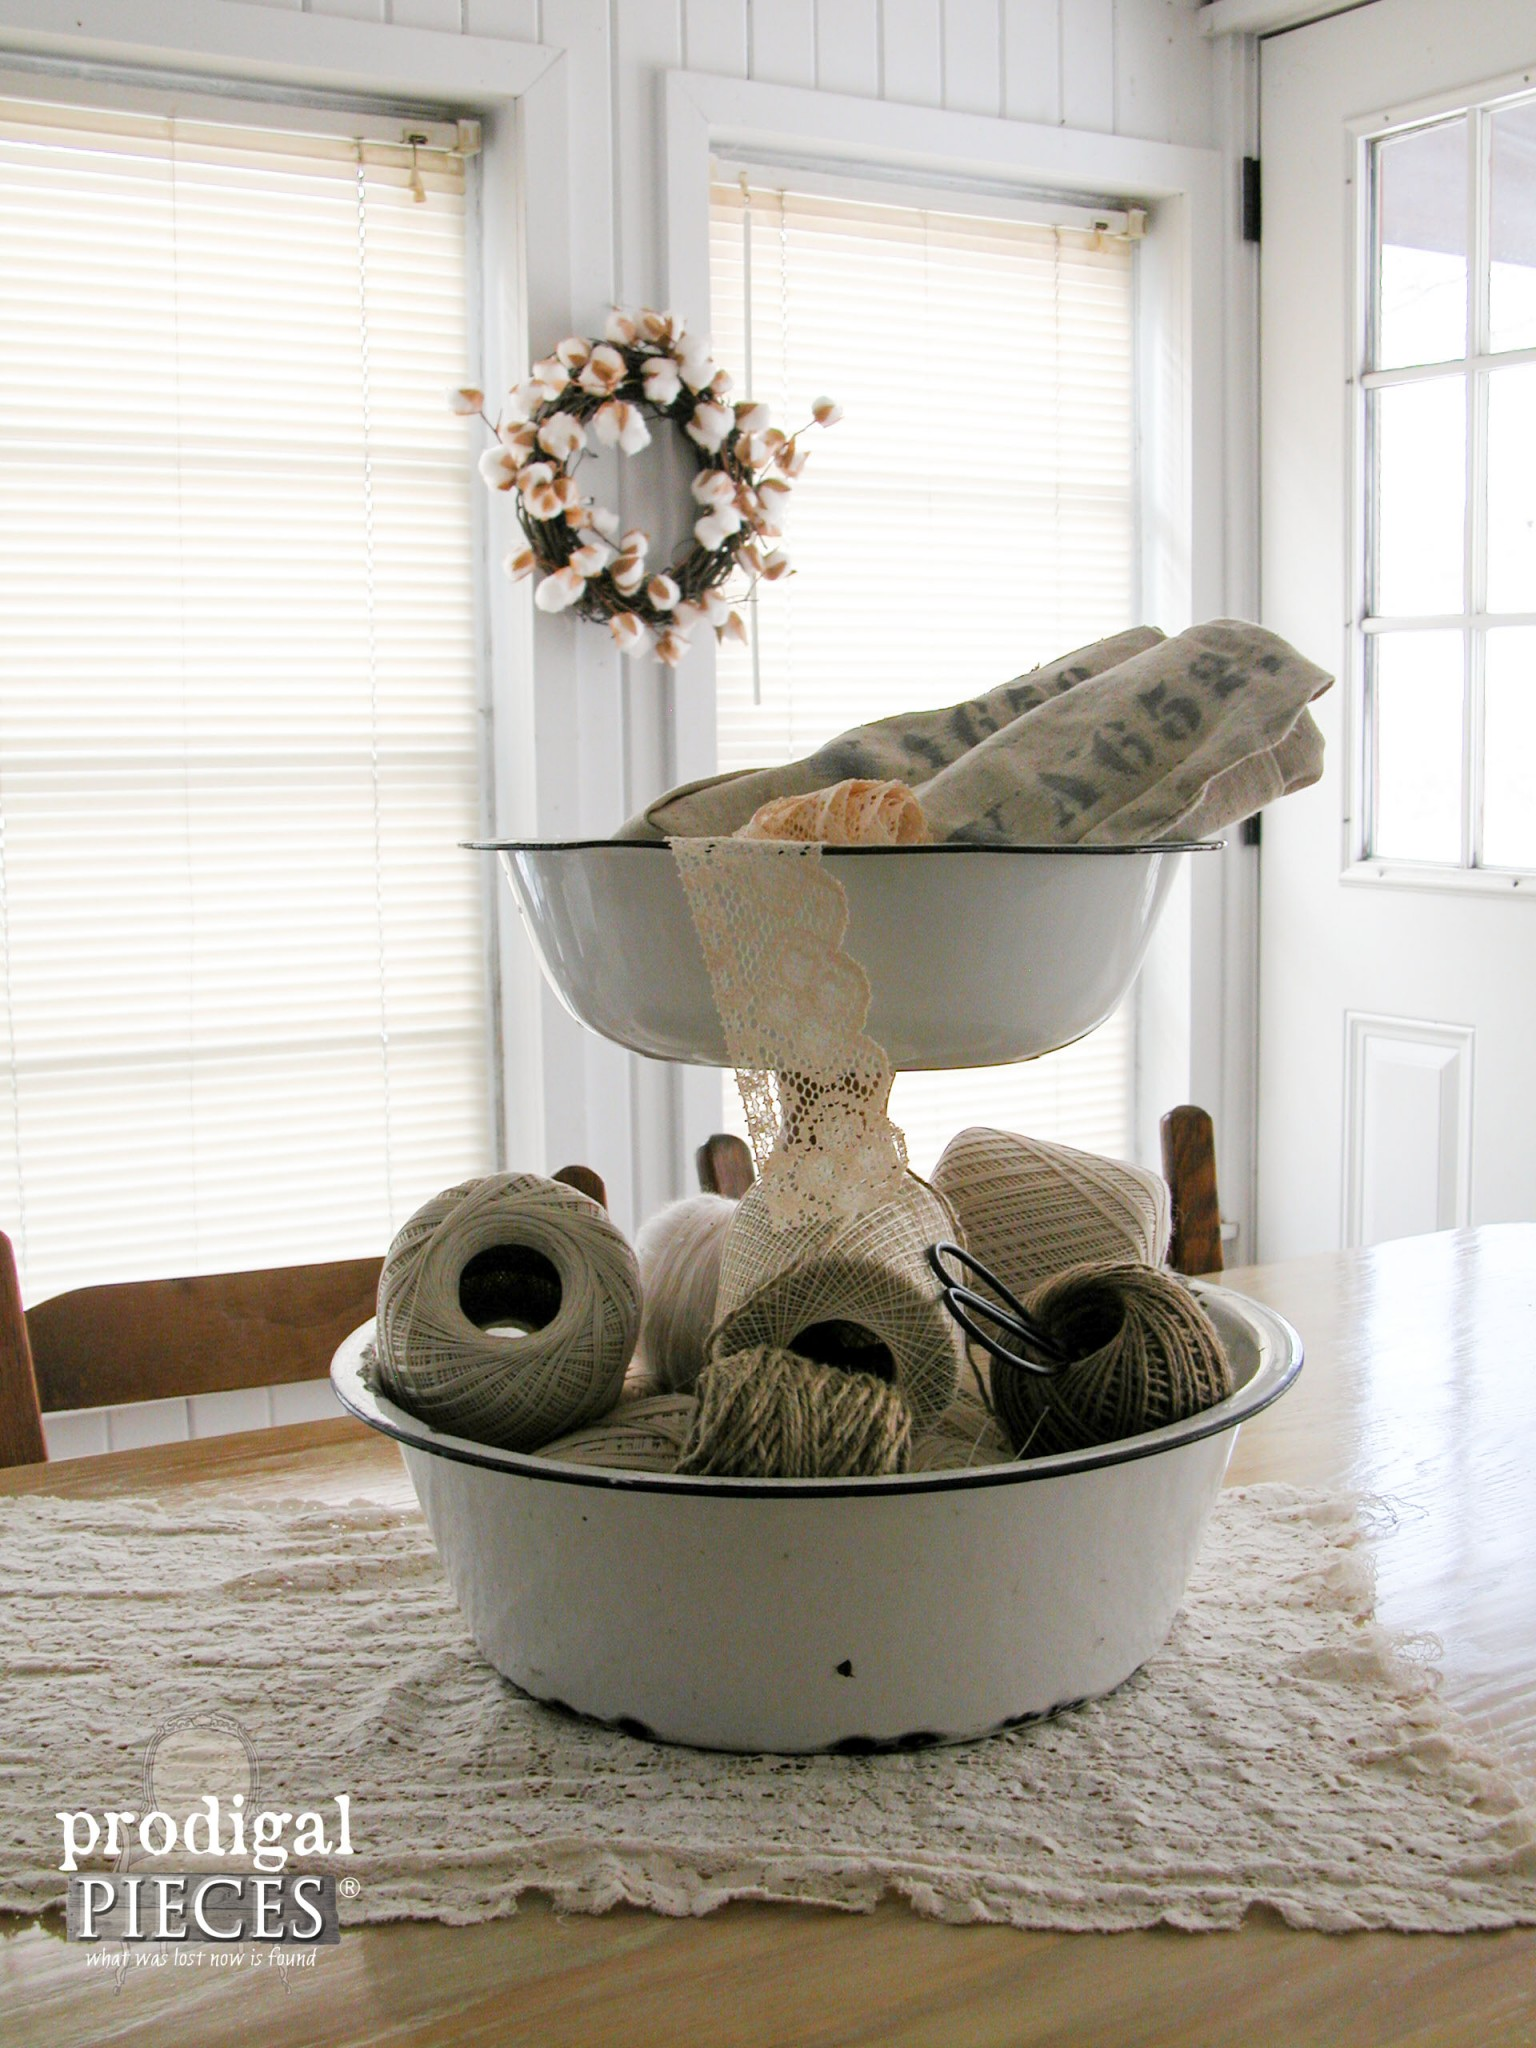 Upcycled Enamelware Basin Stand created by Prodigal Pieces | www.prodigalpieces.com